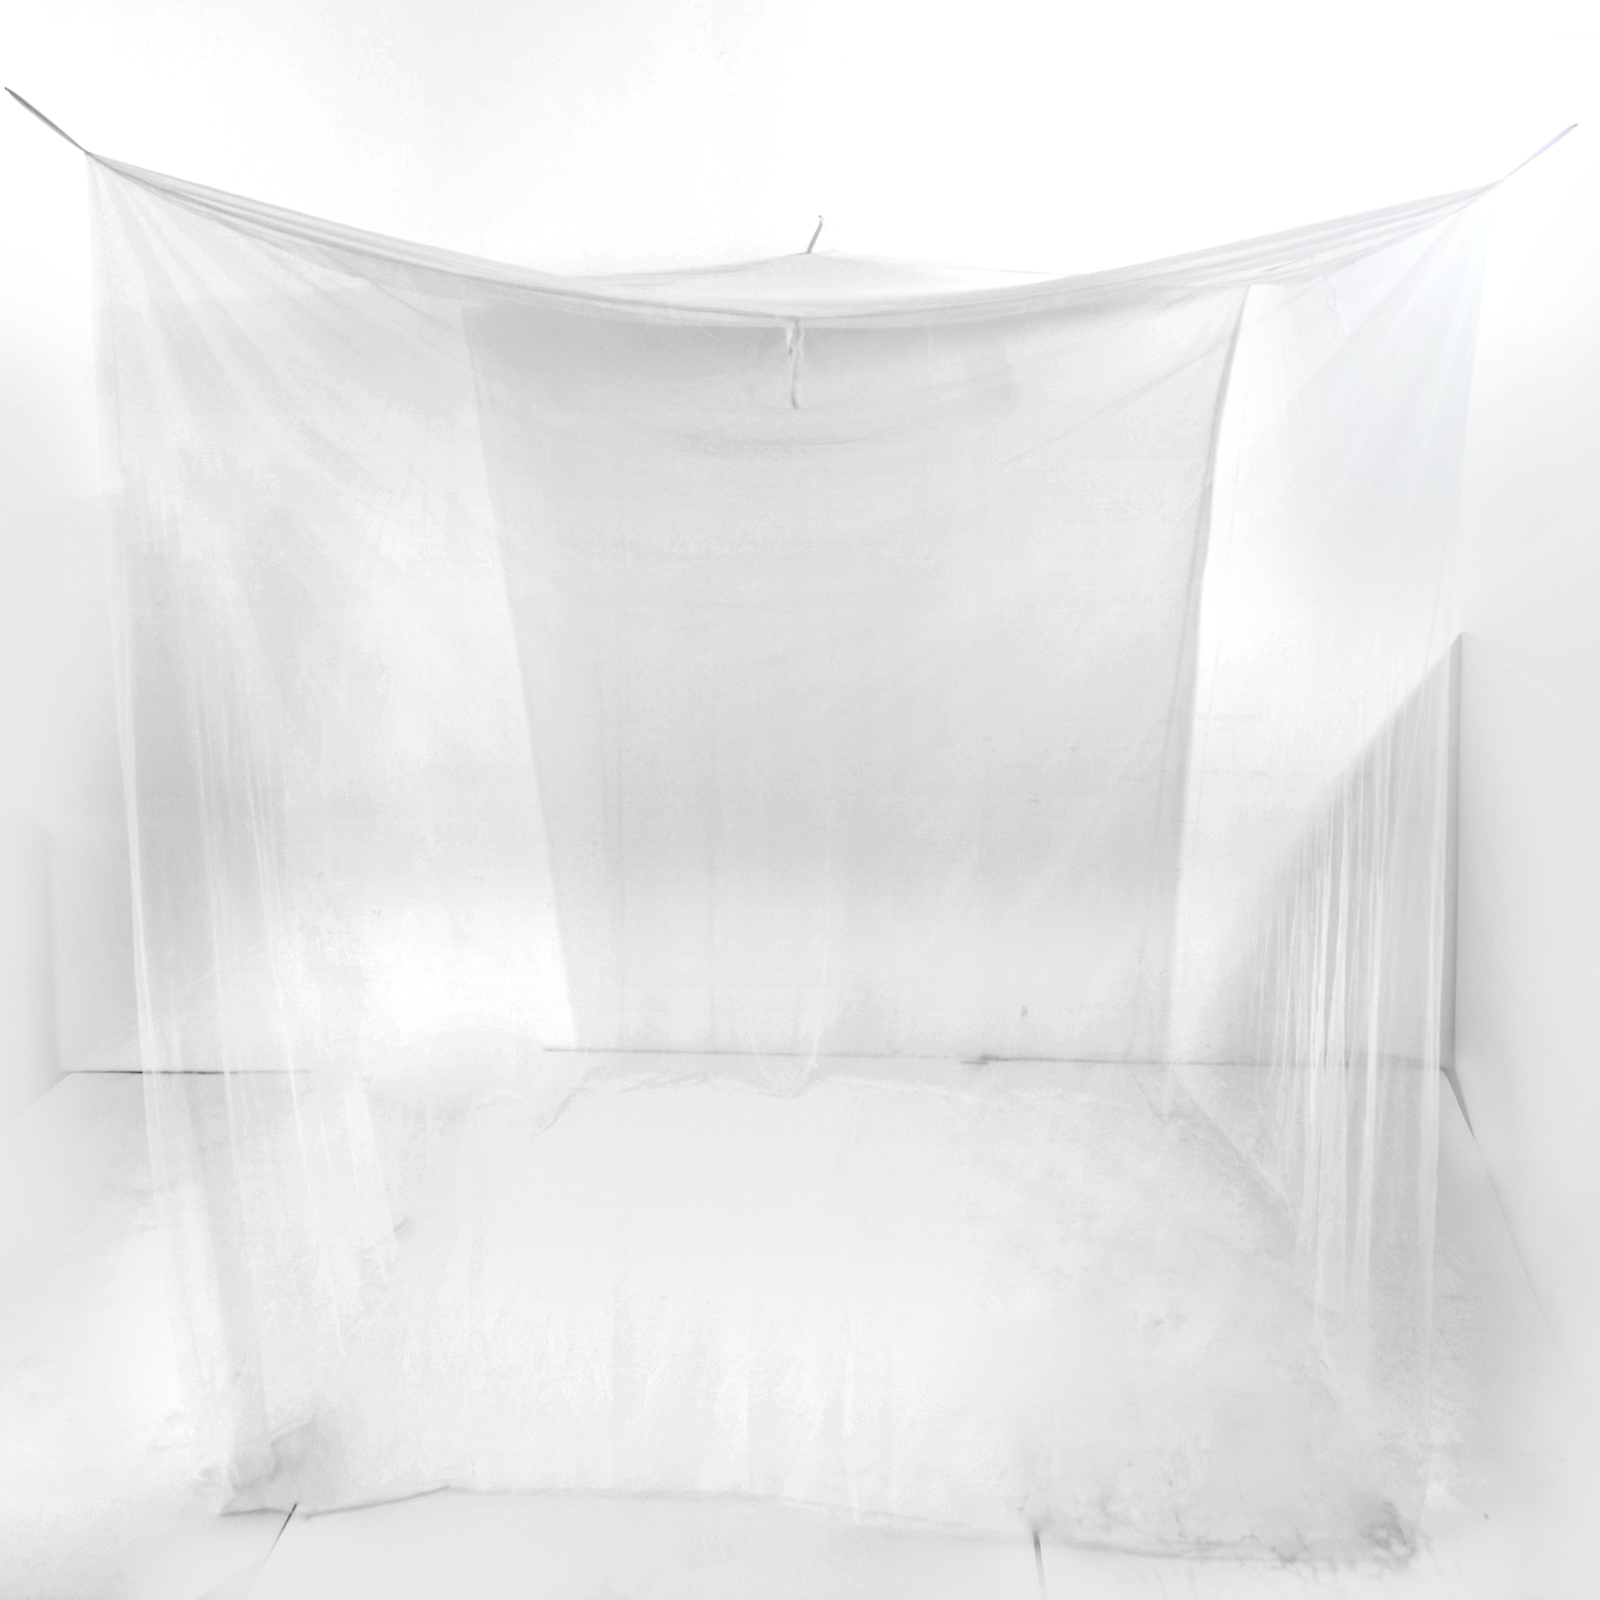 Mosquito Net Fly Insect Protection Bed Curtain Single Double Bed Travel Camping Ebay